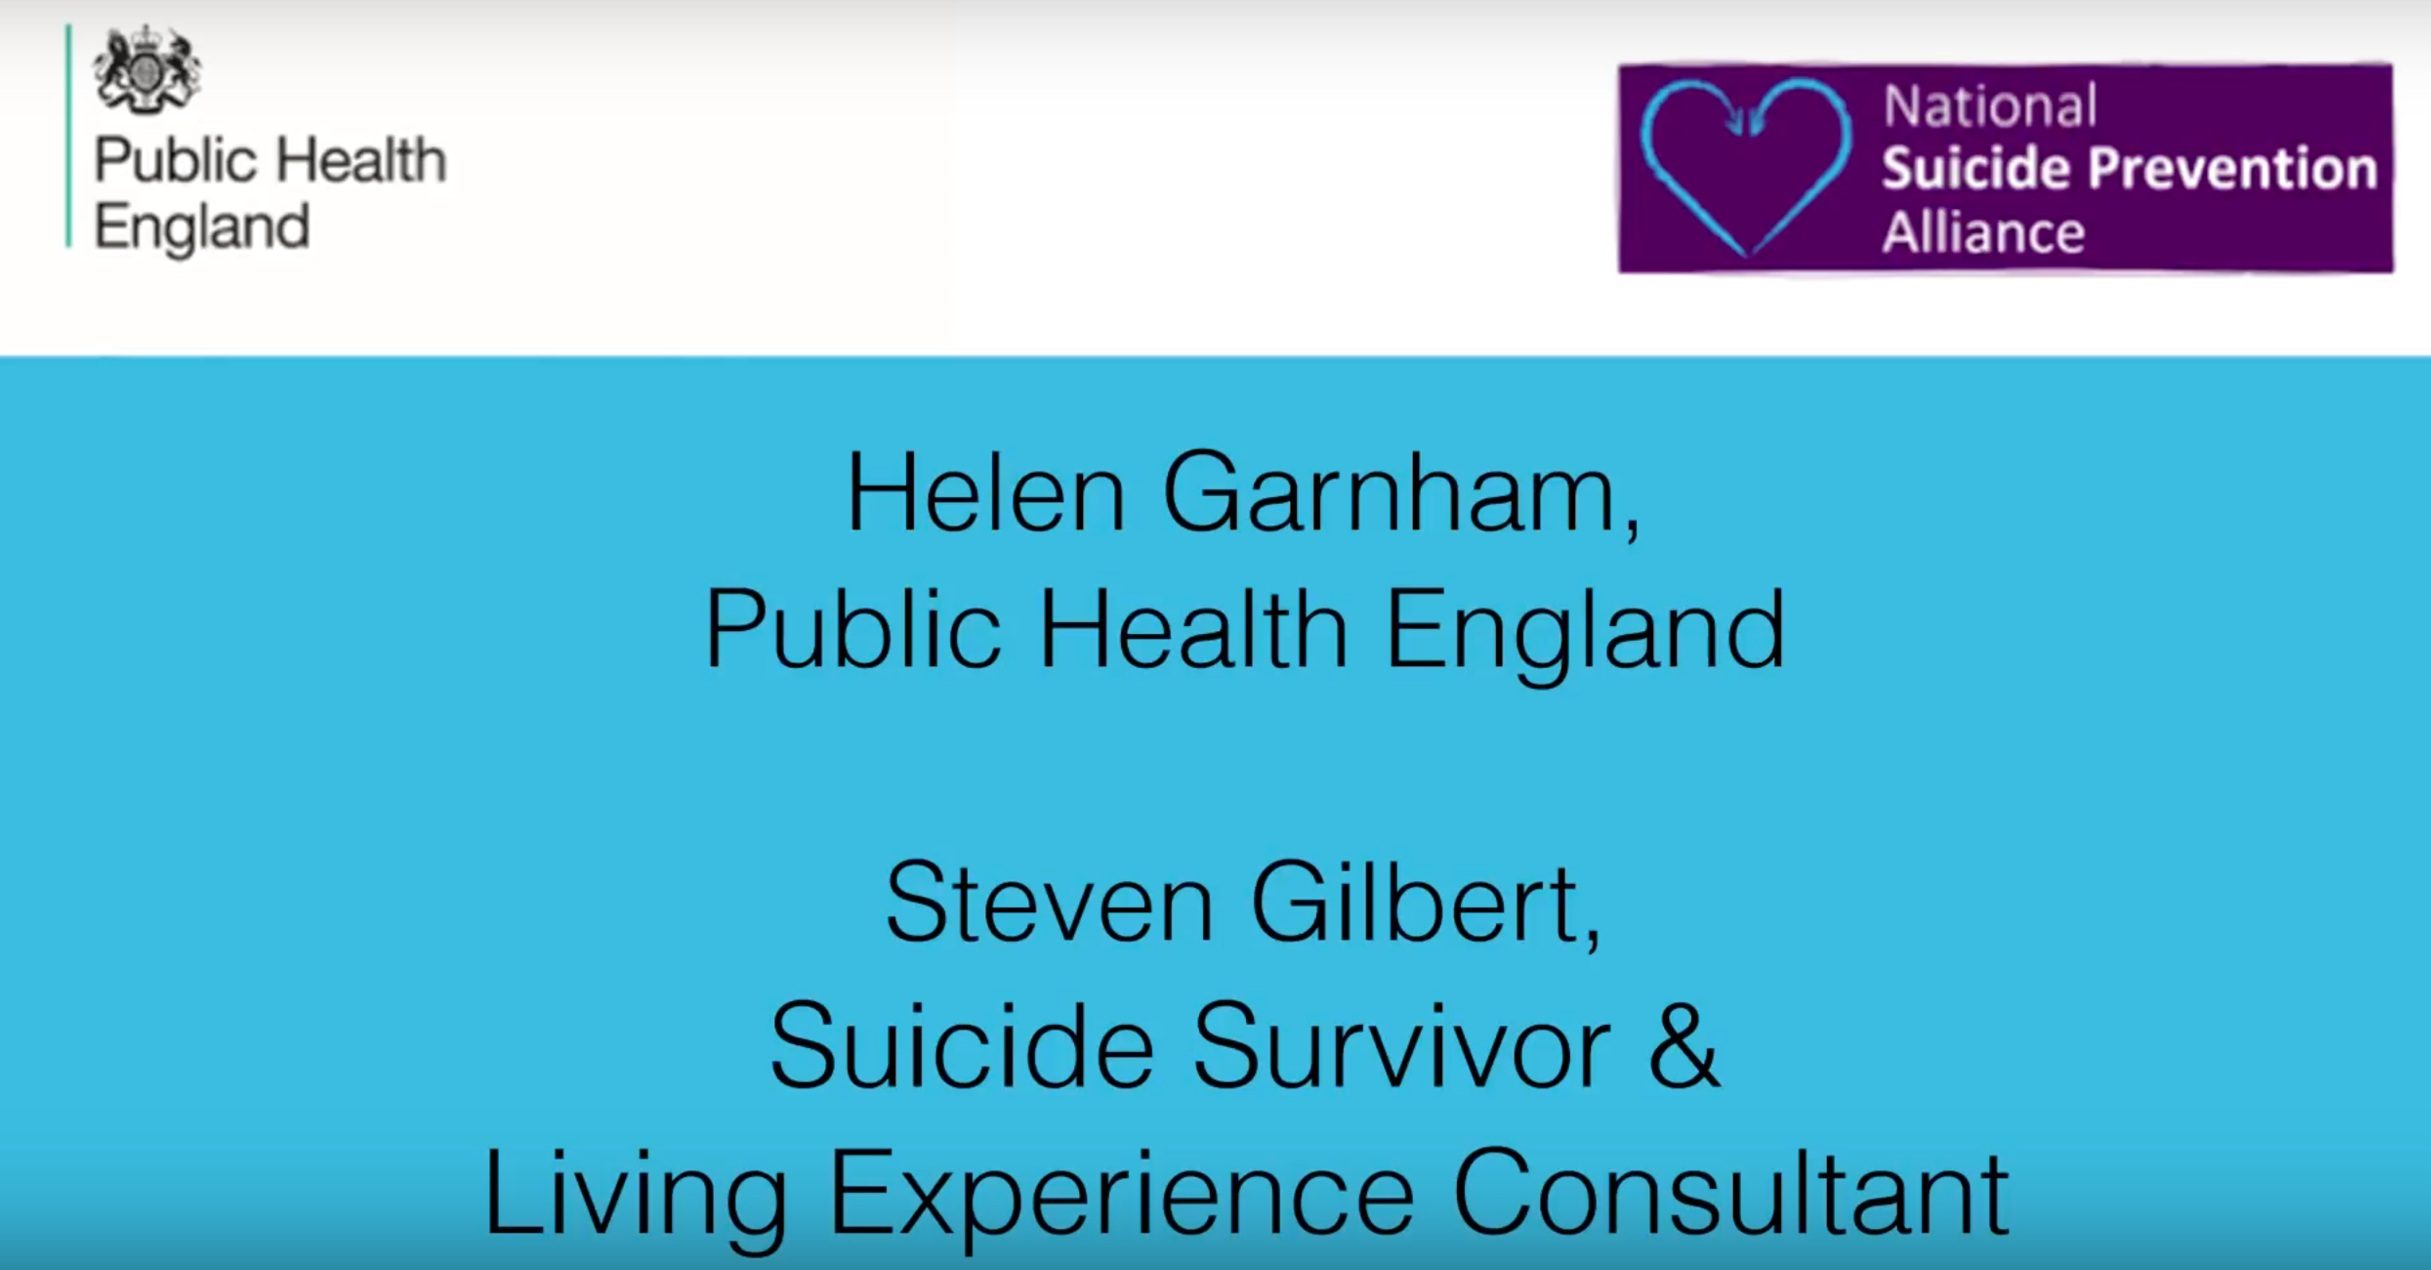 Living Experience & Suicide Prevention - Steve created a series of 8 short videos, with a colleague at Public Health England, to explore the importance of directly involving suicide attempt survivors in local suicide prevention planning.